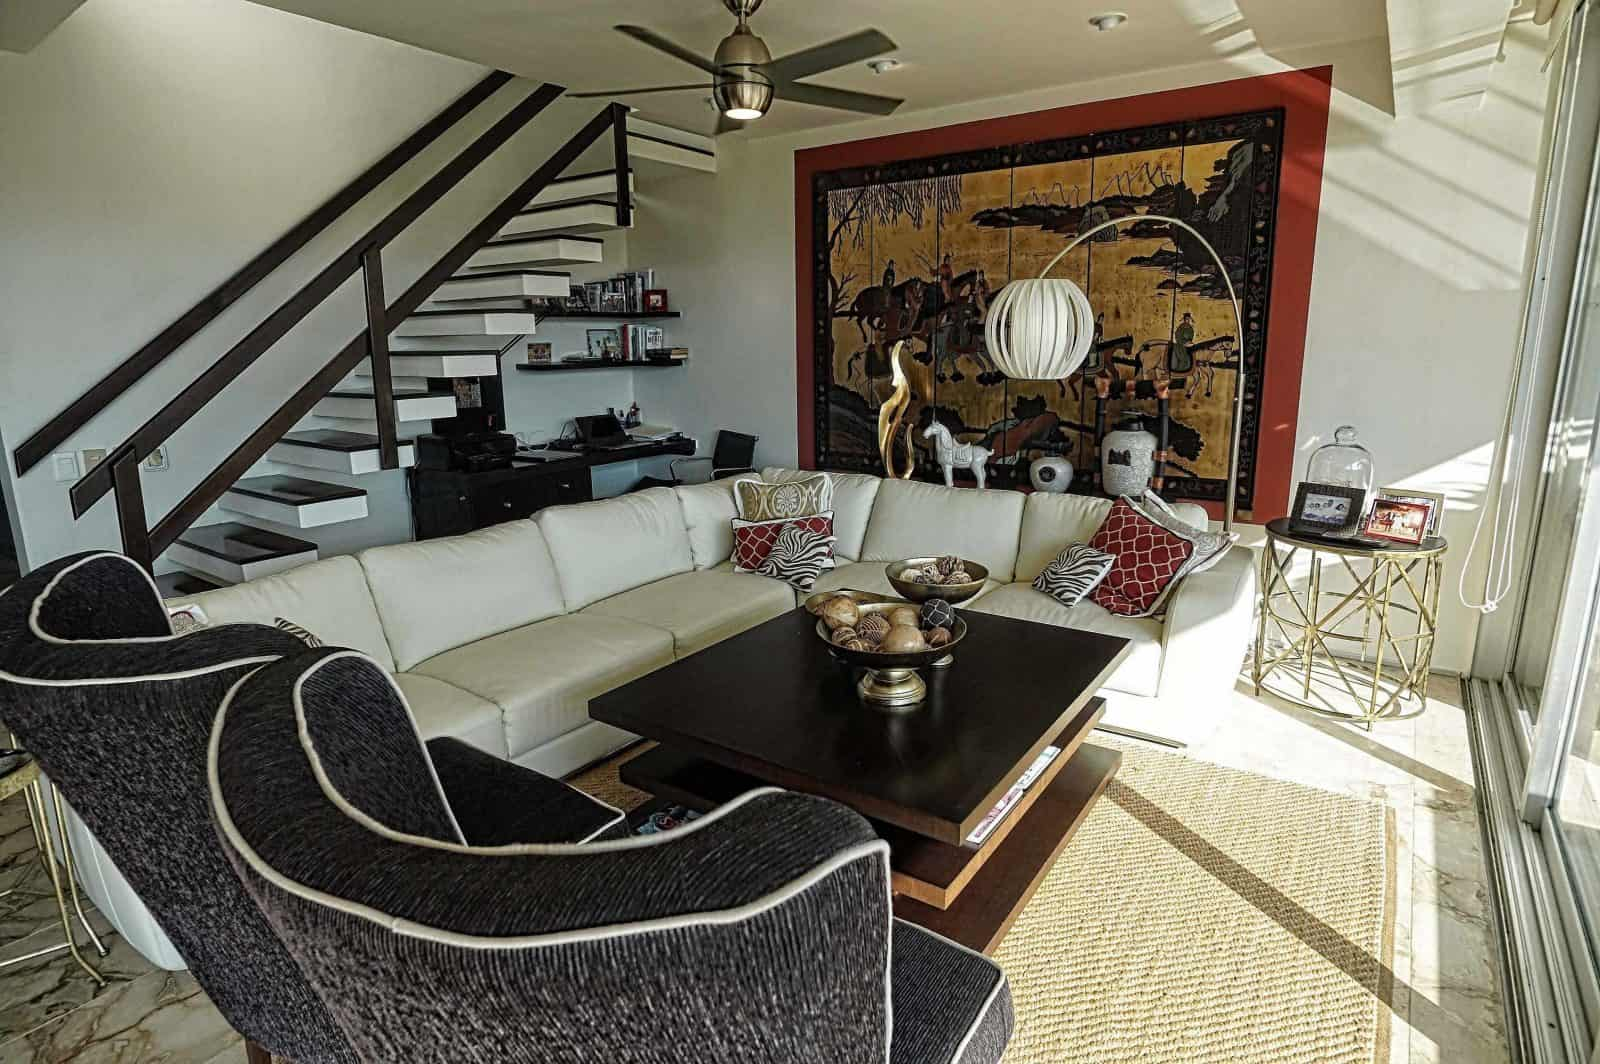 Magia Penthouse living on 2 levels with 2 cozy seating areas on the main level